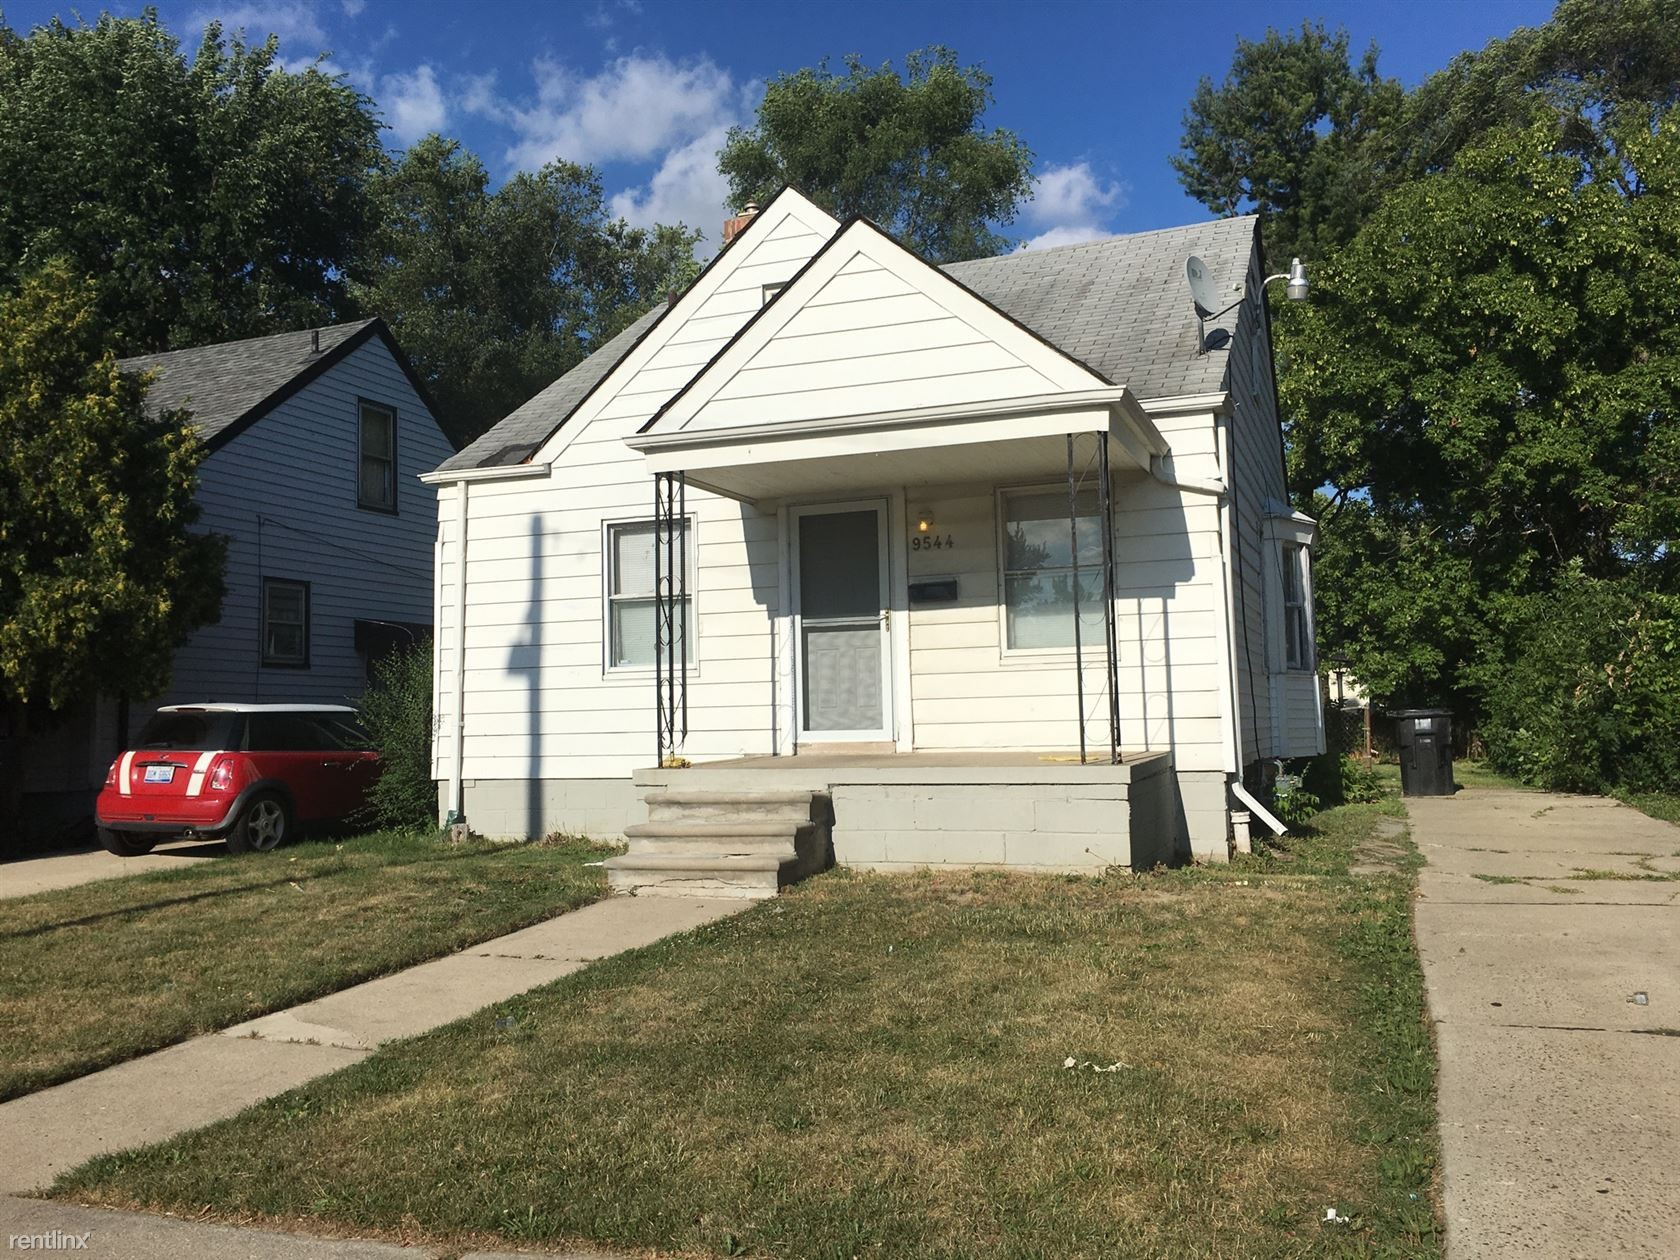 chicago w detroit mi 48228 3 bedroom house for rent for